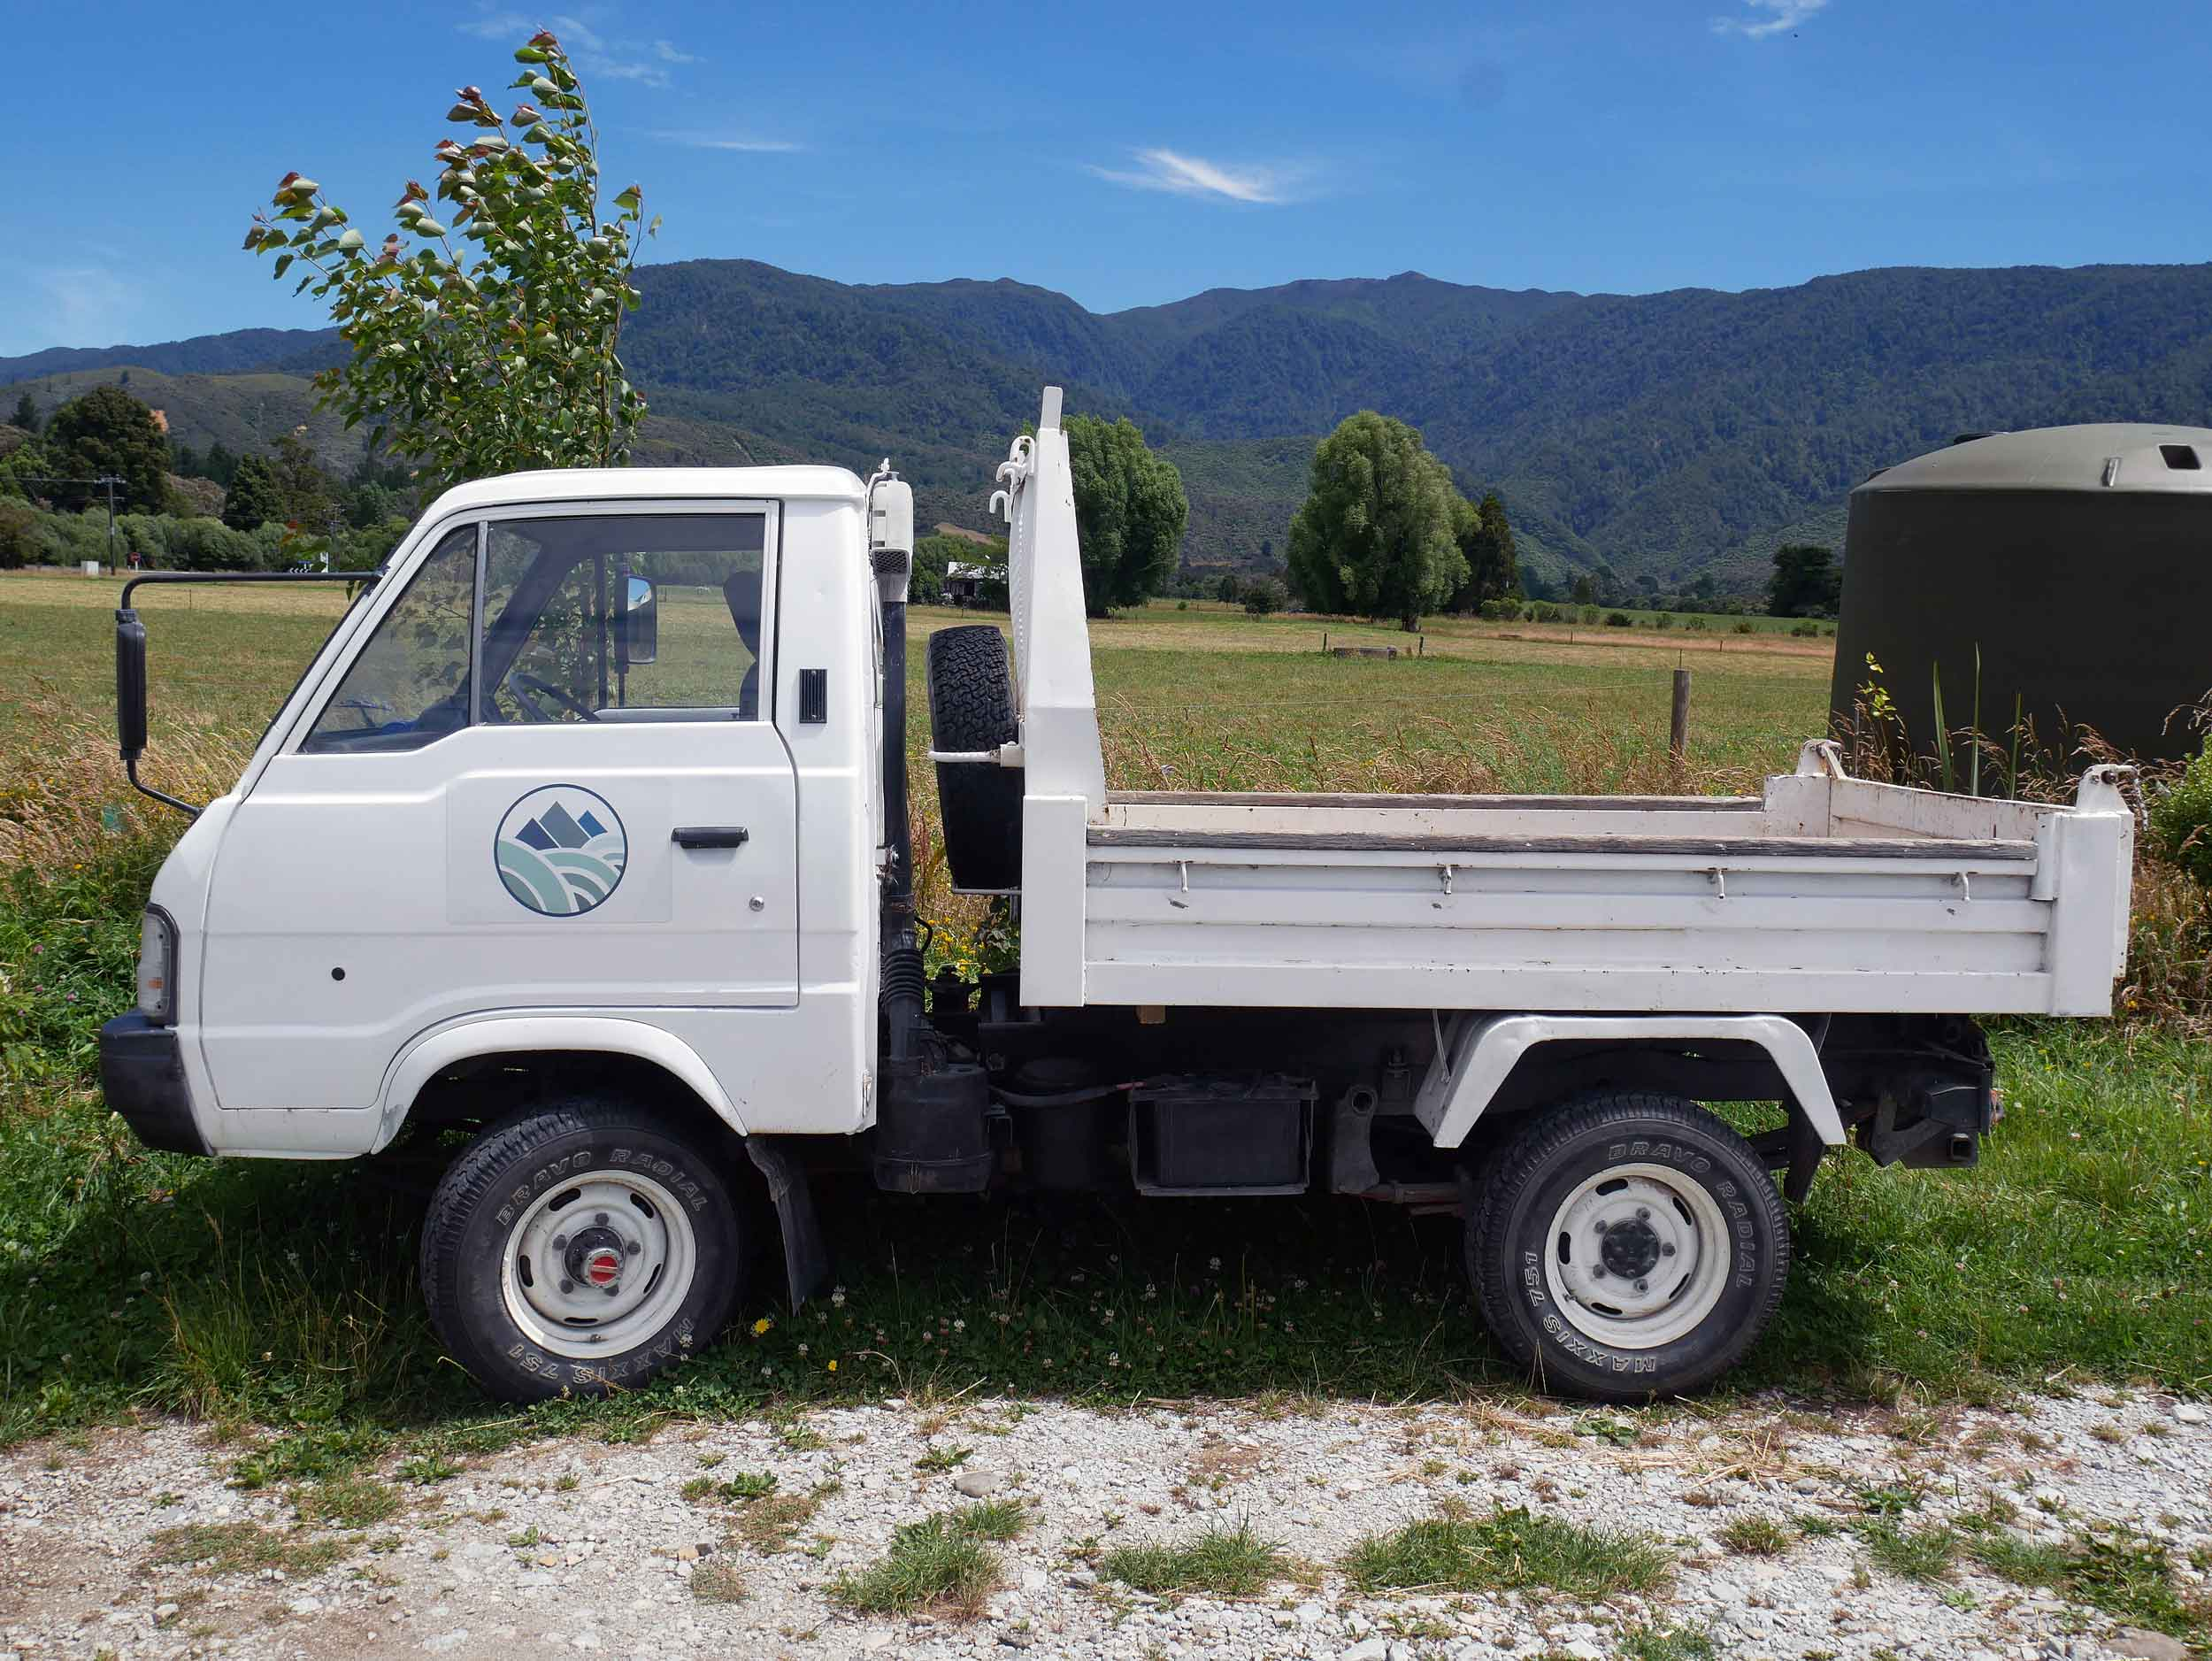 The trusty Puramahoi Fields truck, which does everything from delivering veggies to market to moving the chicken coop!